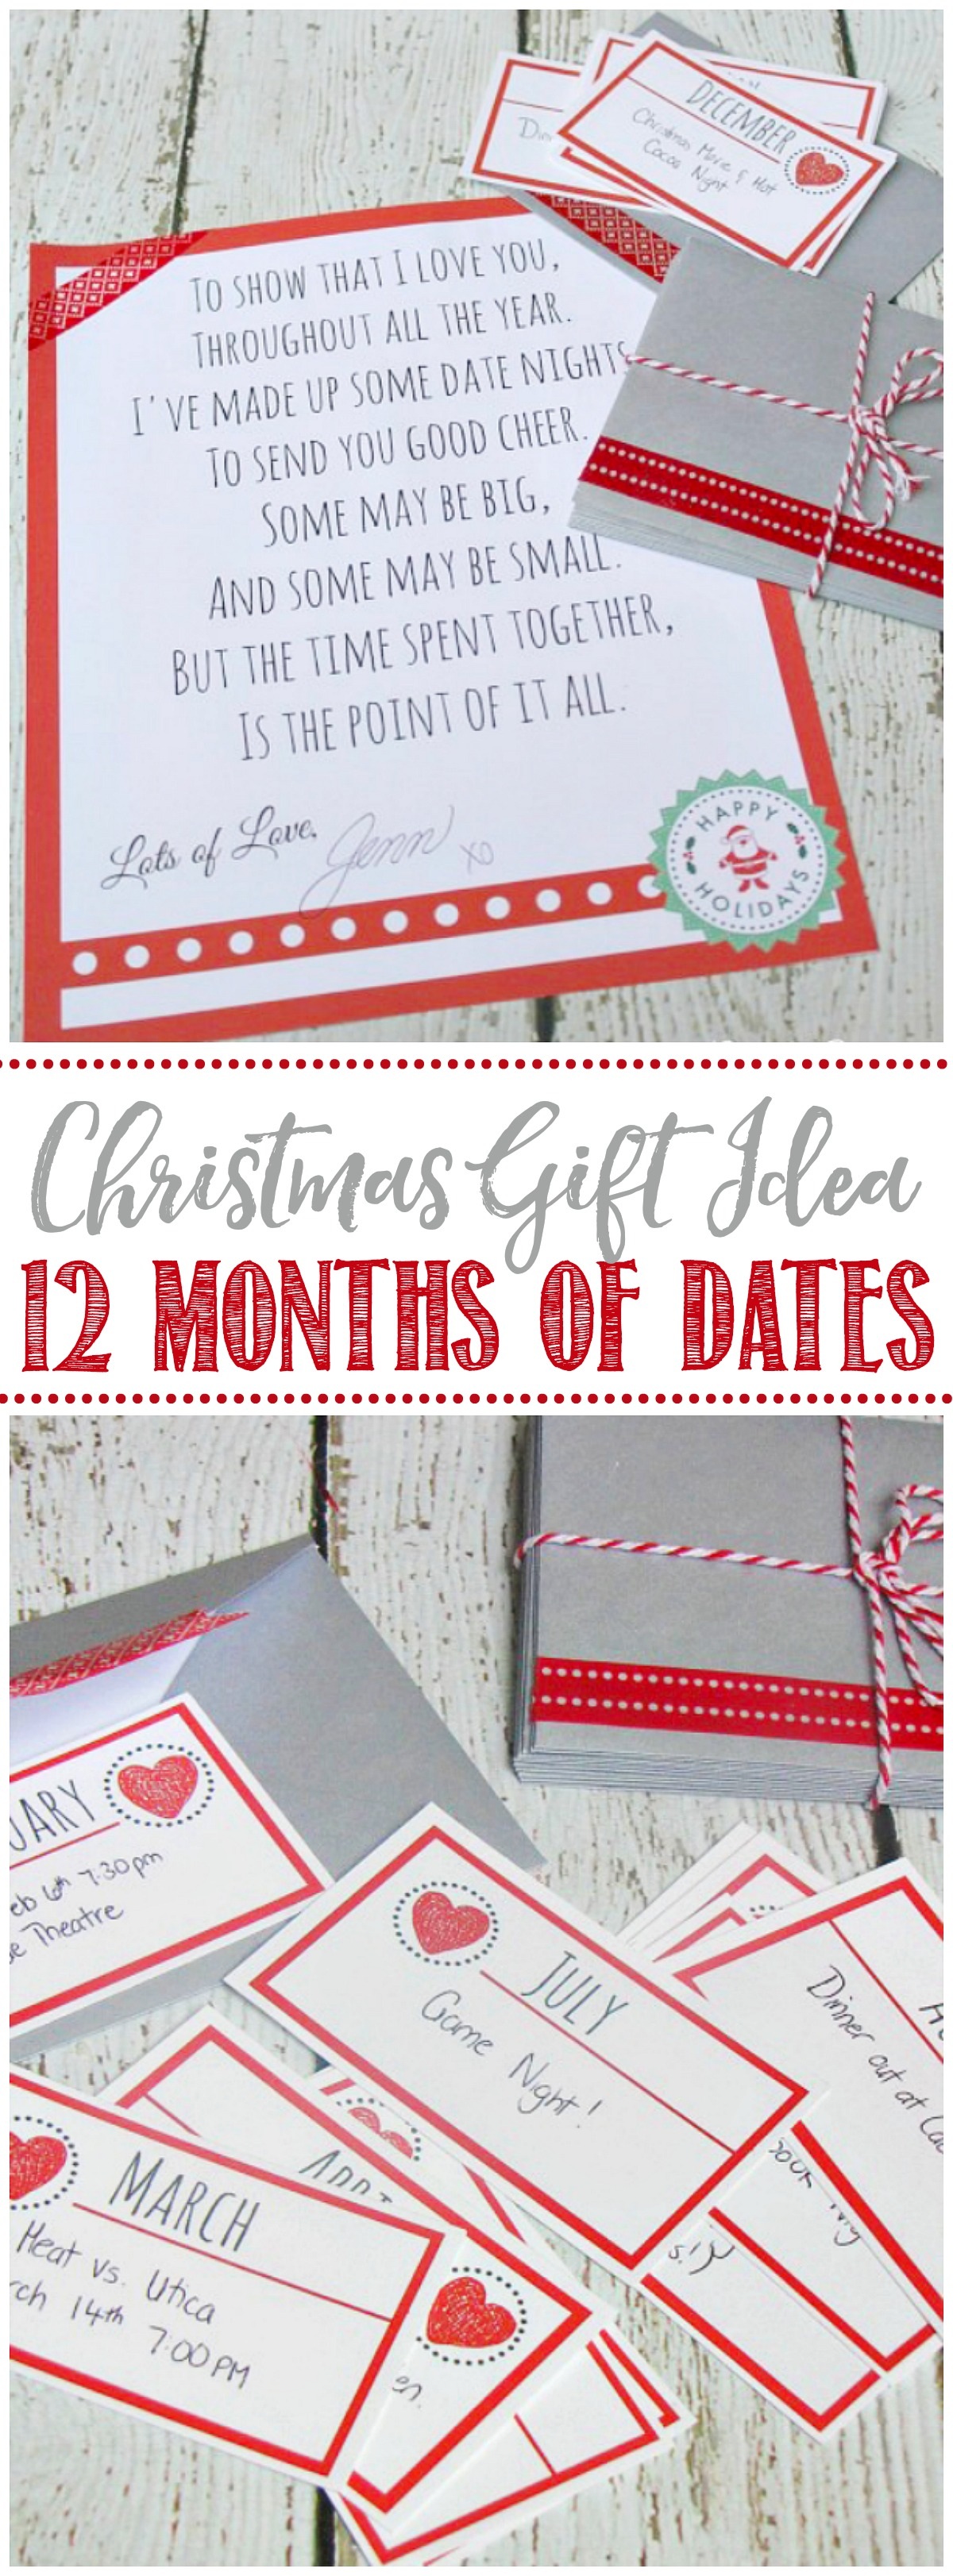 12 Months Of Dates Christmas Gift Ideas Clean And Scentsible